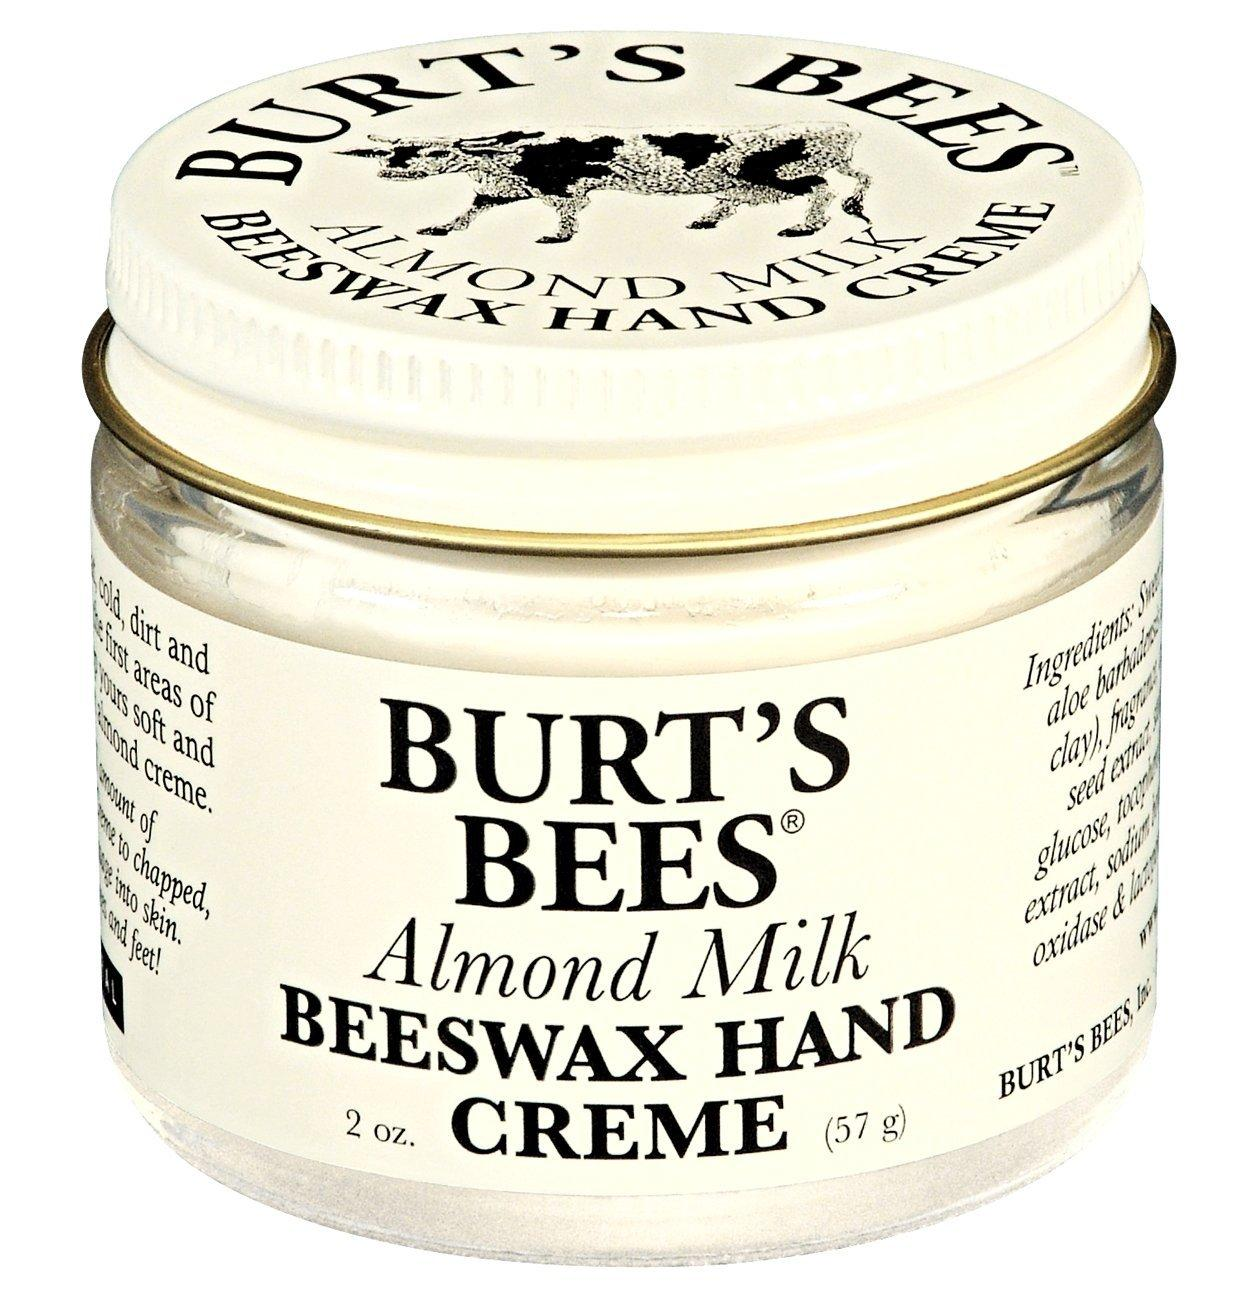 Burt's Bees 100% Natural Almond Milk Beeswax Hand Crème, 2 Ounces (Pack of 2)